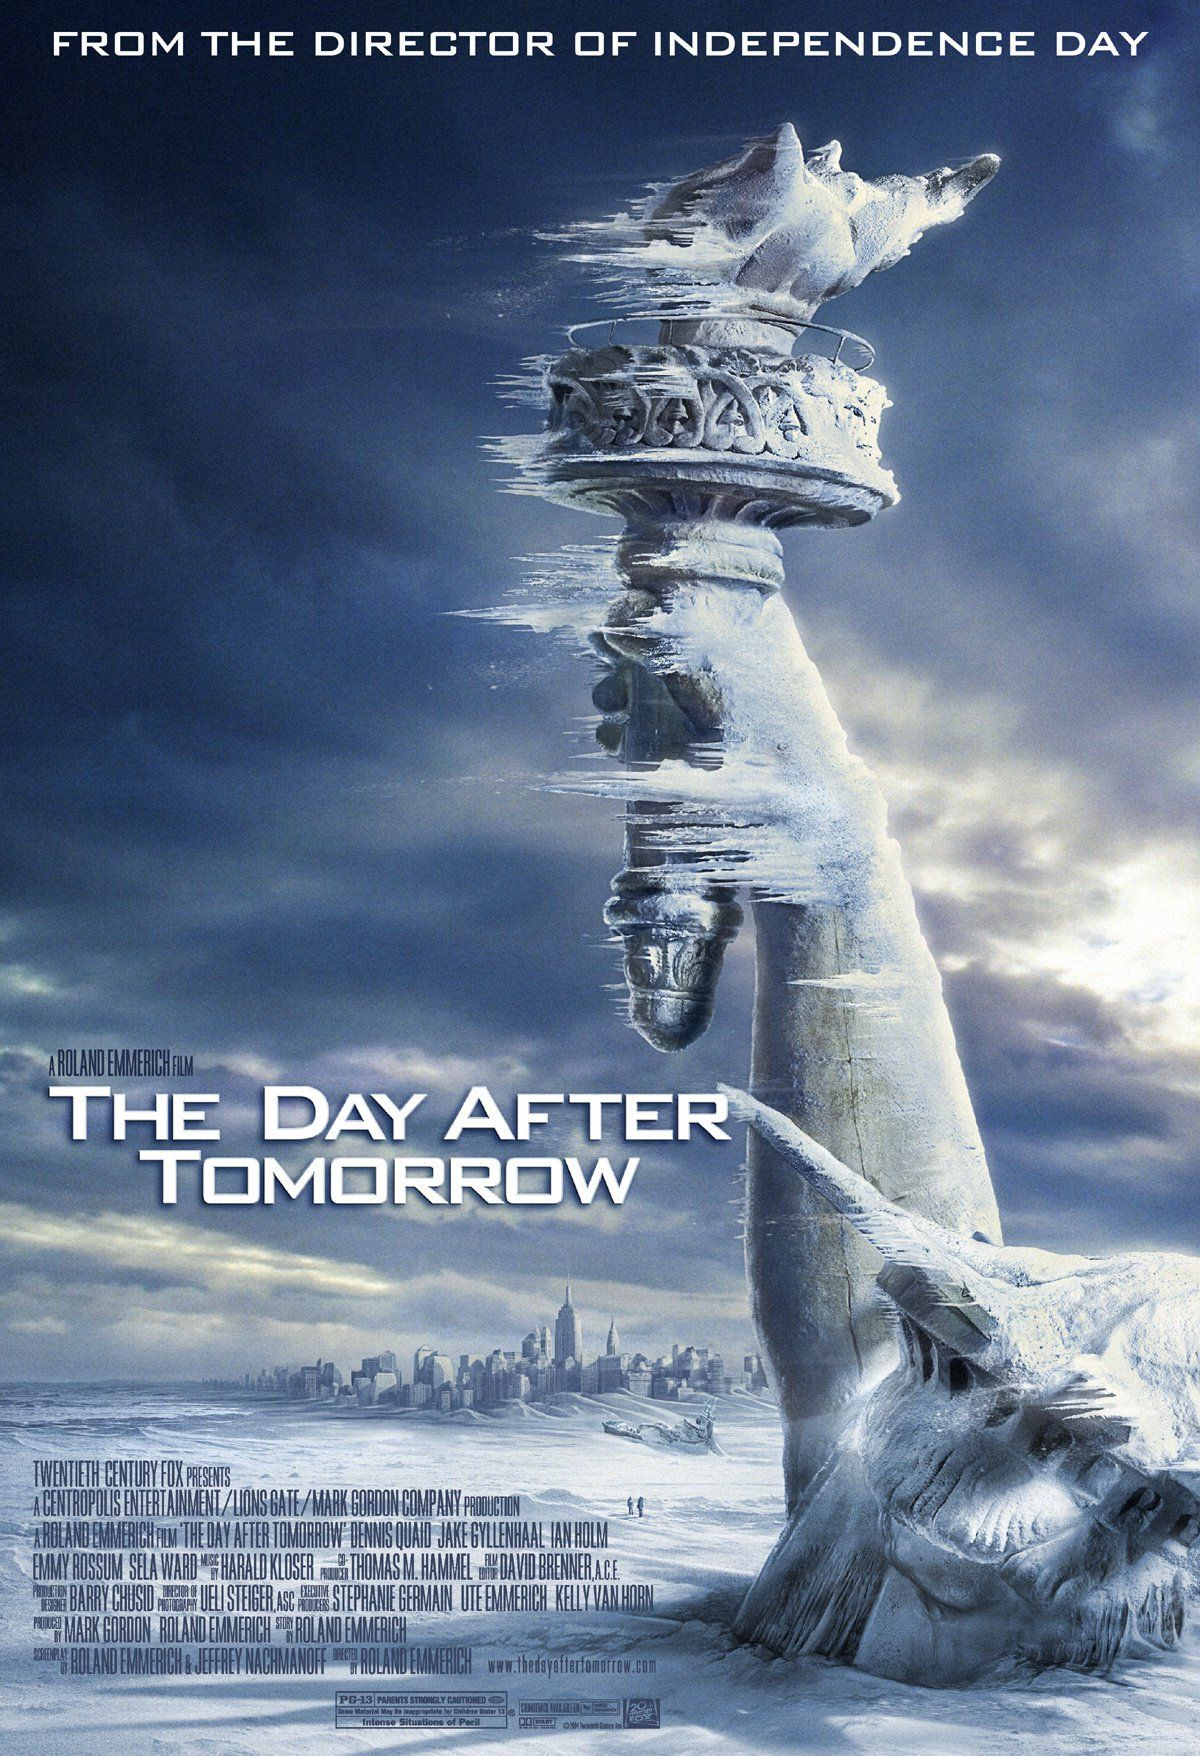 The Day After Tomorrow 2004 Movie Review Streaming Movies Movies Film Movie